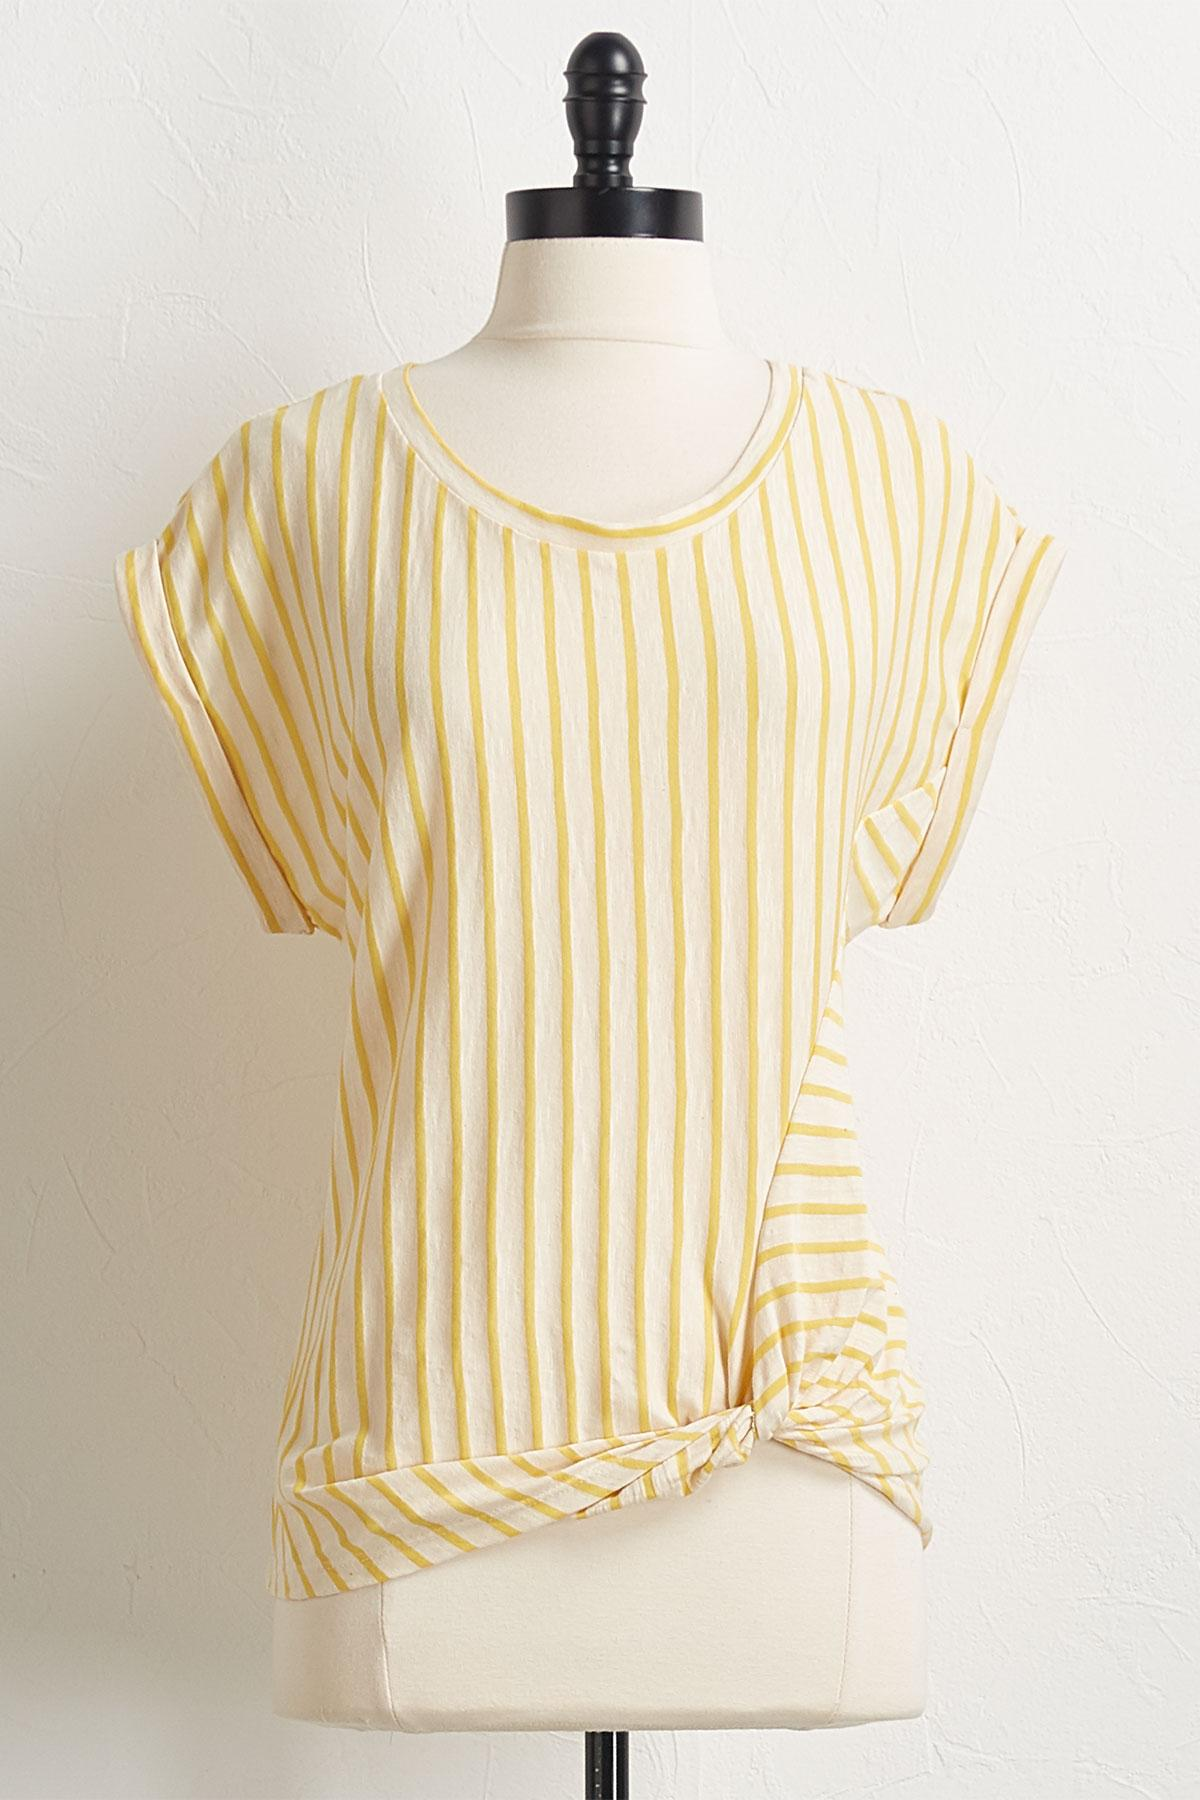 Knotted Golden Stripe Top